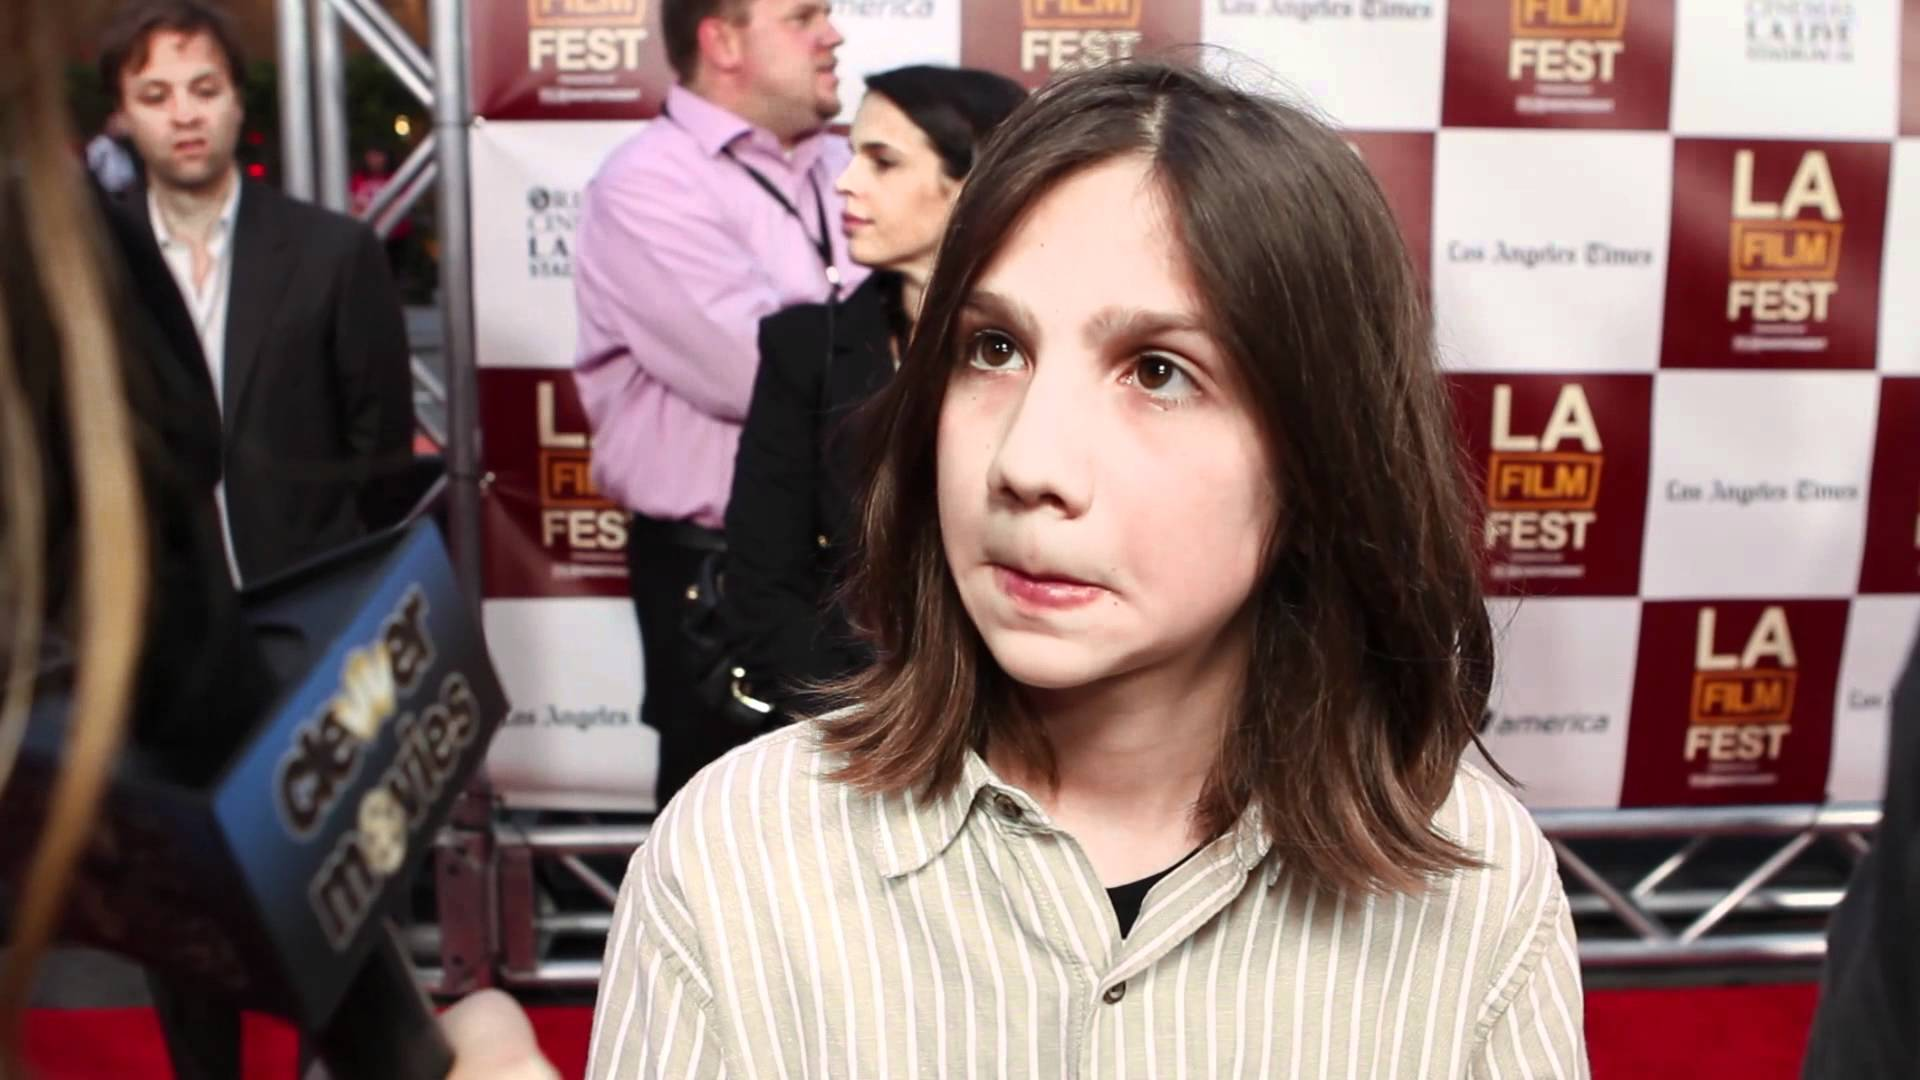 Michael Hall D'Addario 'People Like Us' Premiere Interview - YouTube